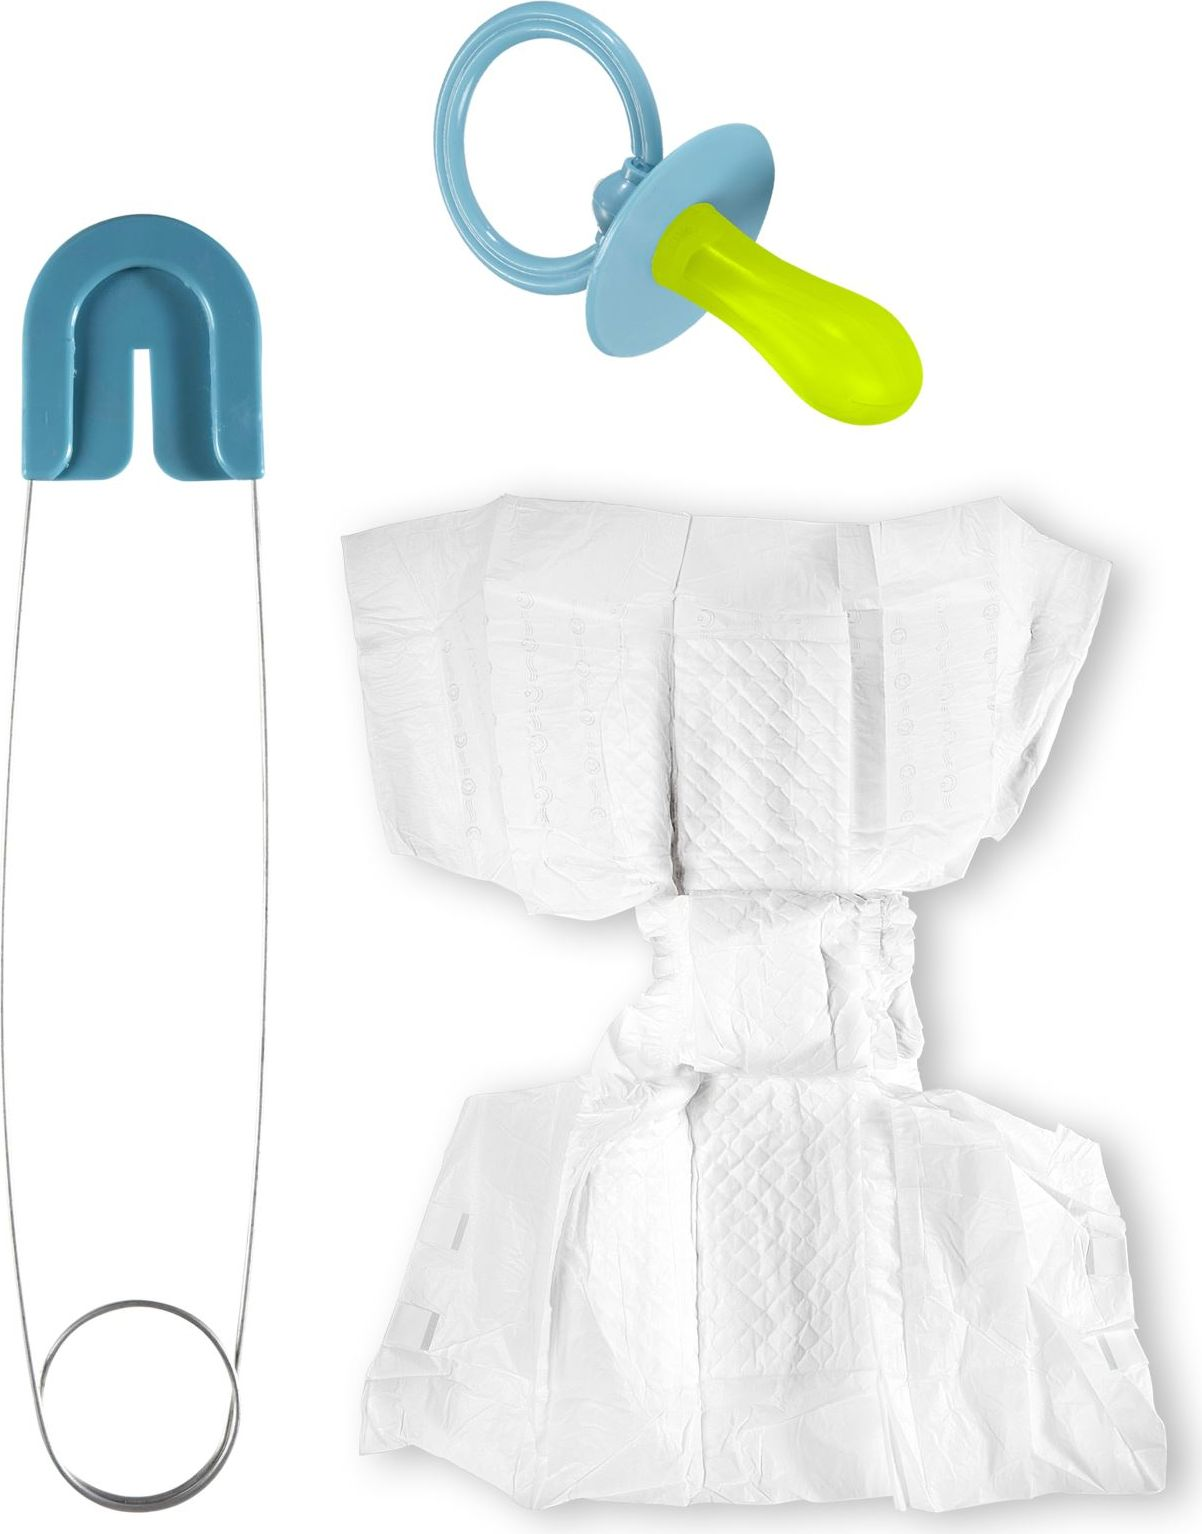 Grote baby accessoires set man